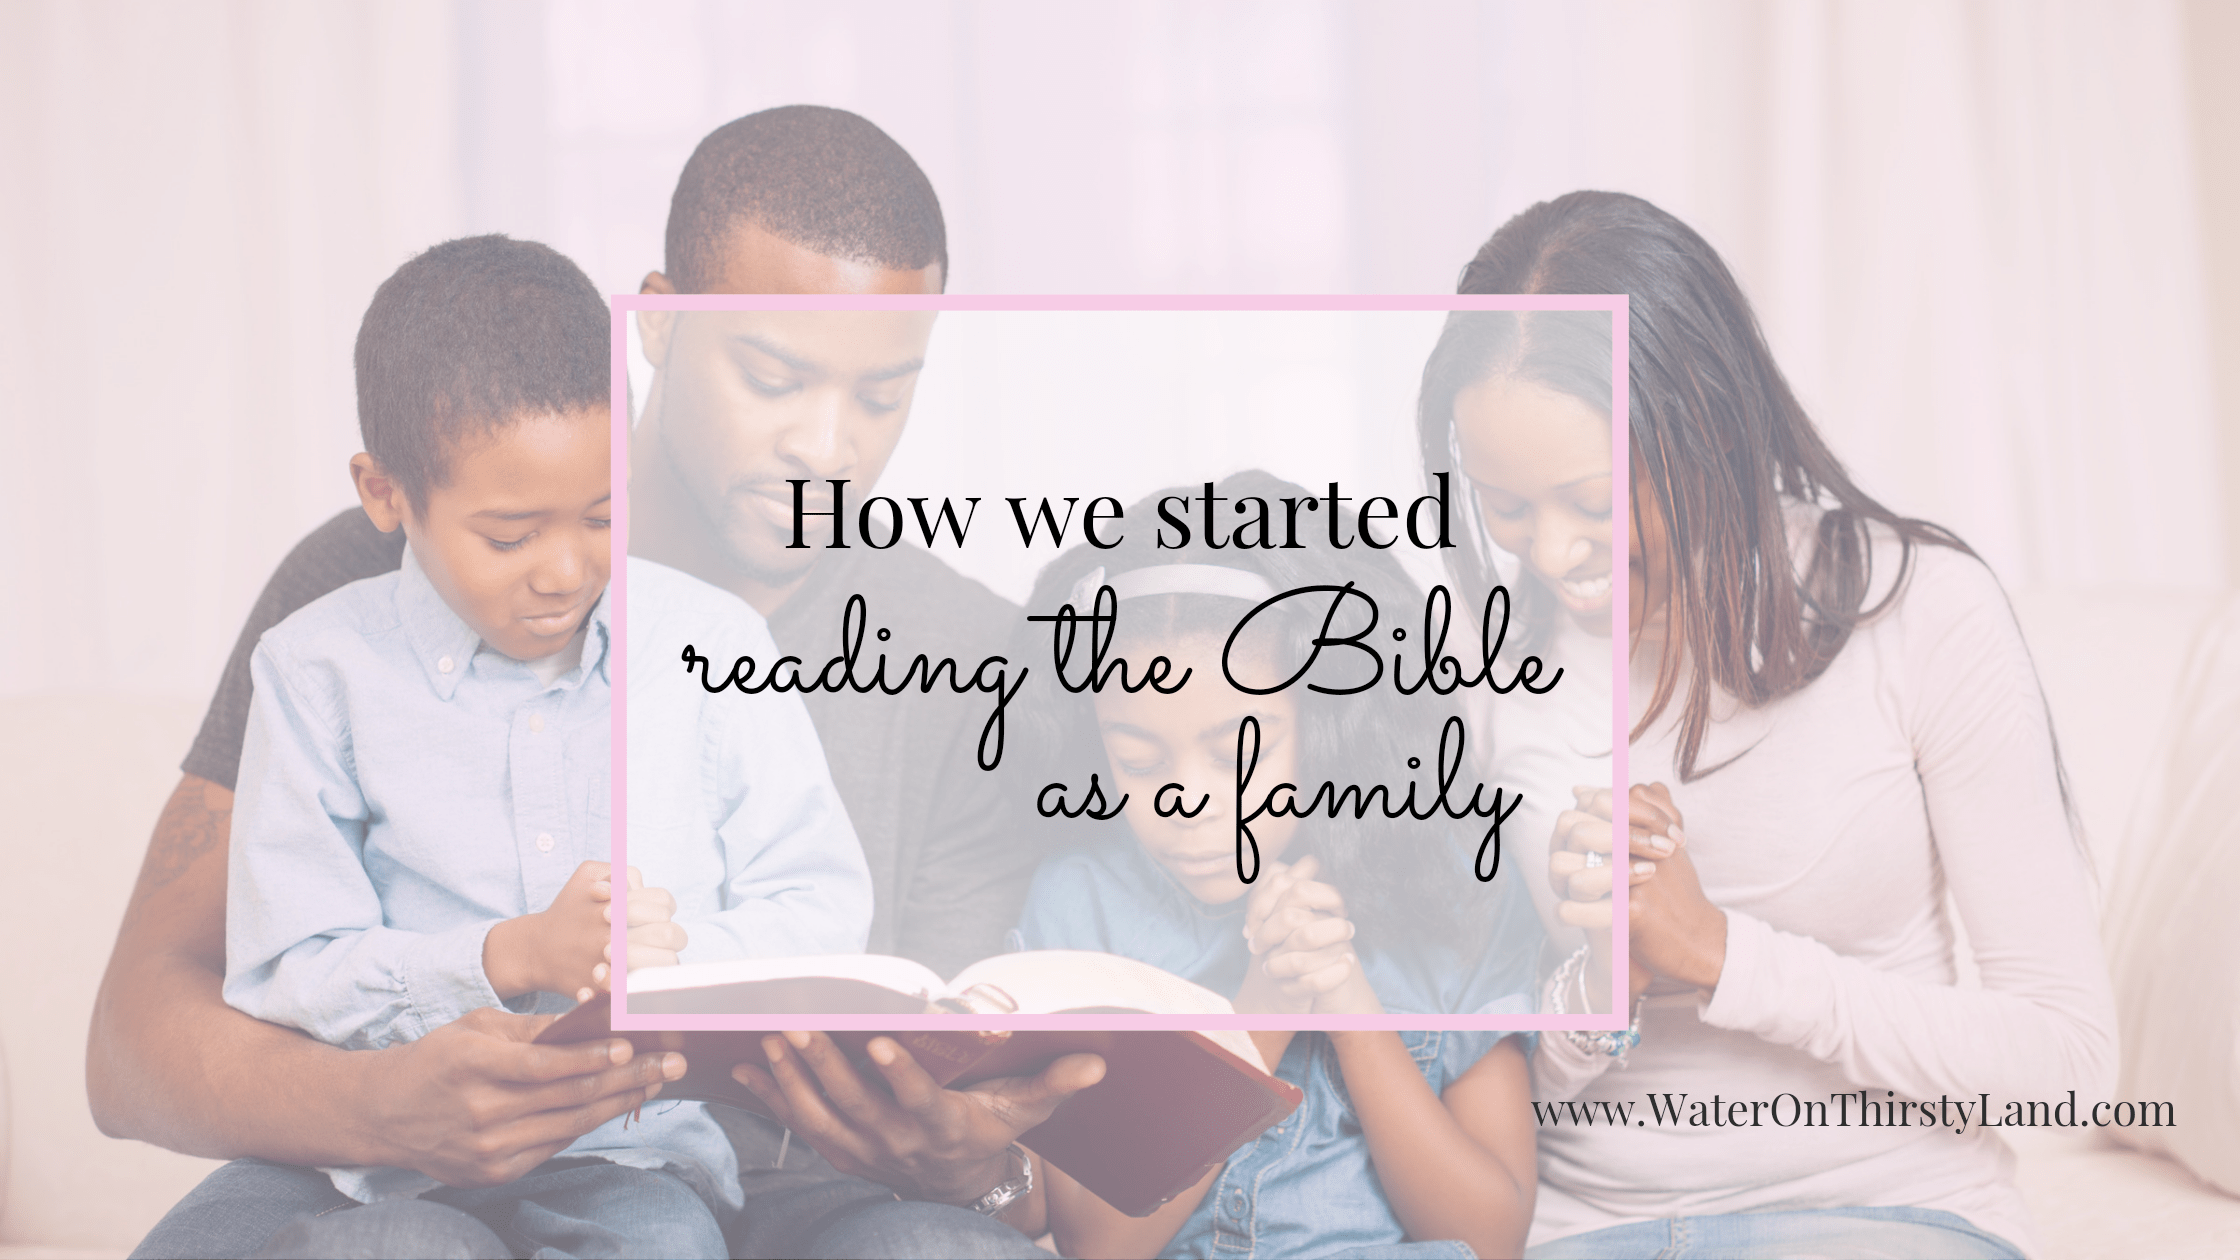 Reading the Bible as a family